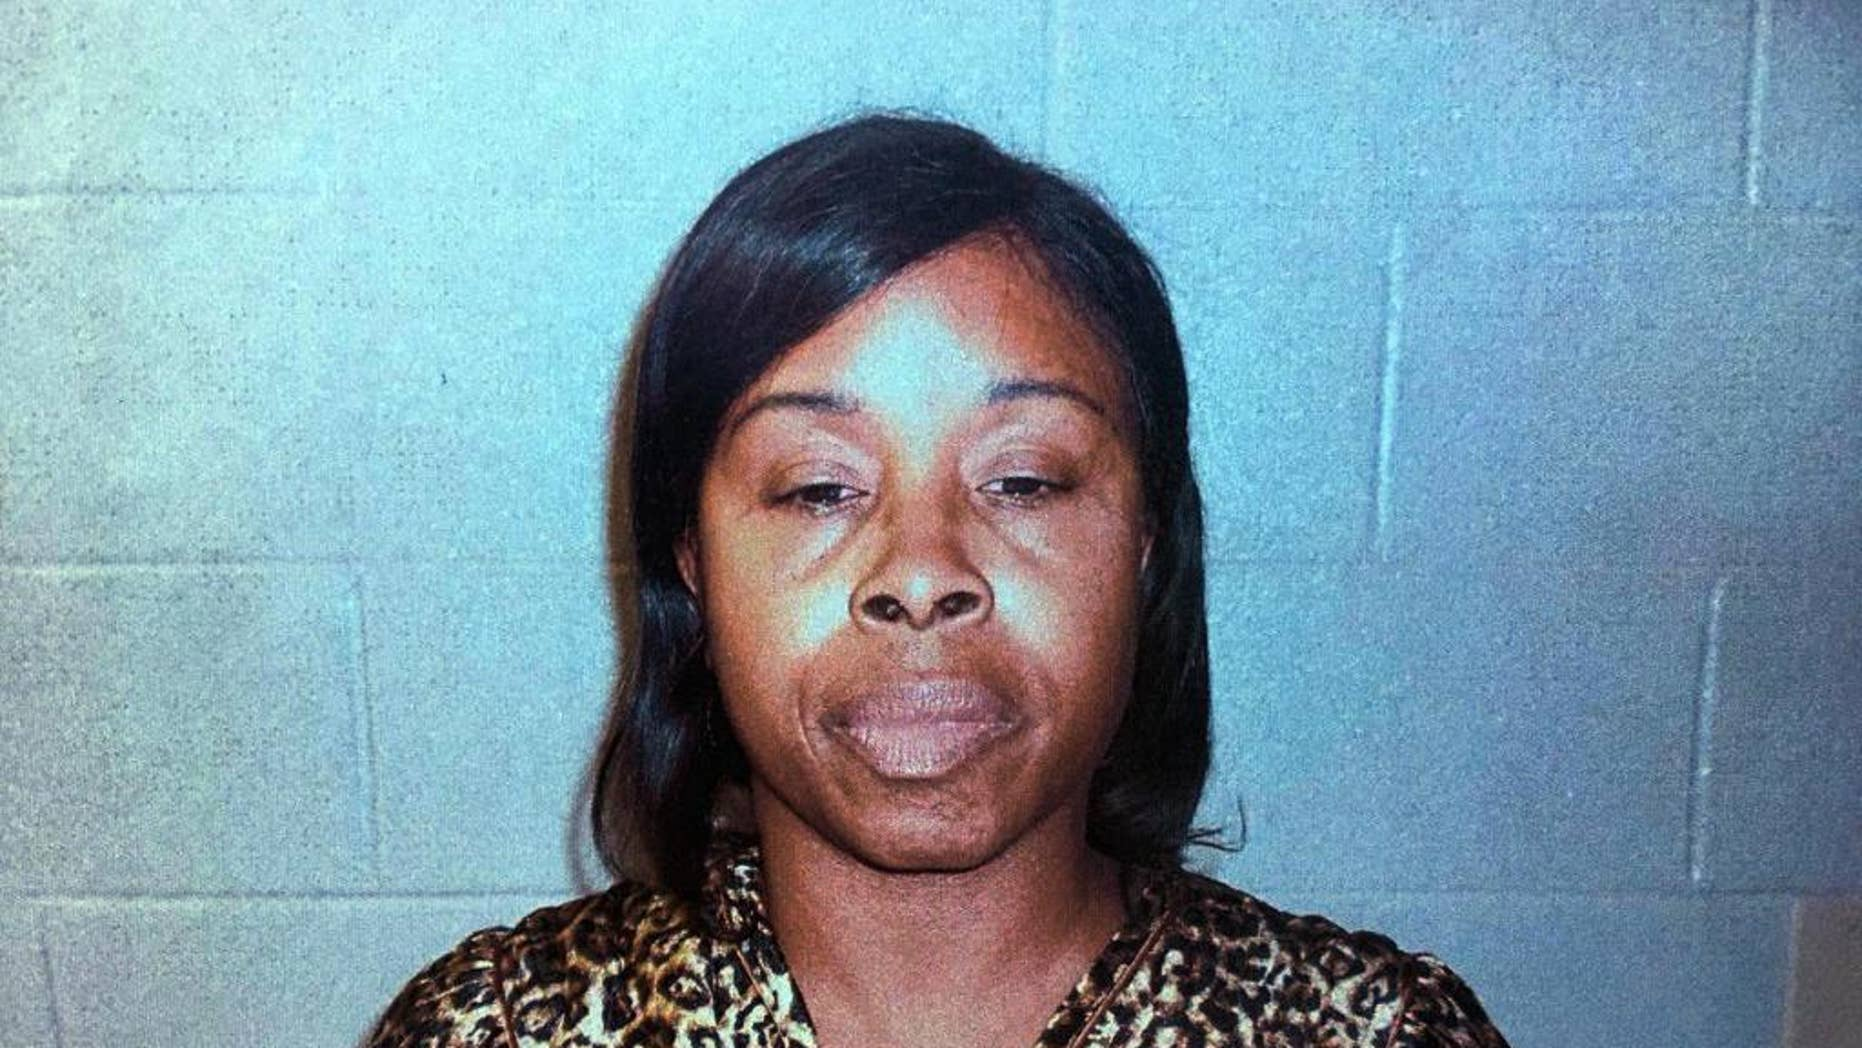 This Friday, Jan. 13, 2017 arrest photo made available by the Jacksonville Sheriff's Office via the Colleton County Sheriff's Office shows Gloria Williams, under arrest in Walterboro, SC. Williams is a suspect in the kidnapping of a baby girl in Jacksonville, Fla., 18 years ago. (Jacksonville Sheriff's Office via Colleton Sheriff's Office via AP)